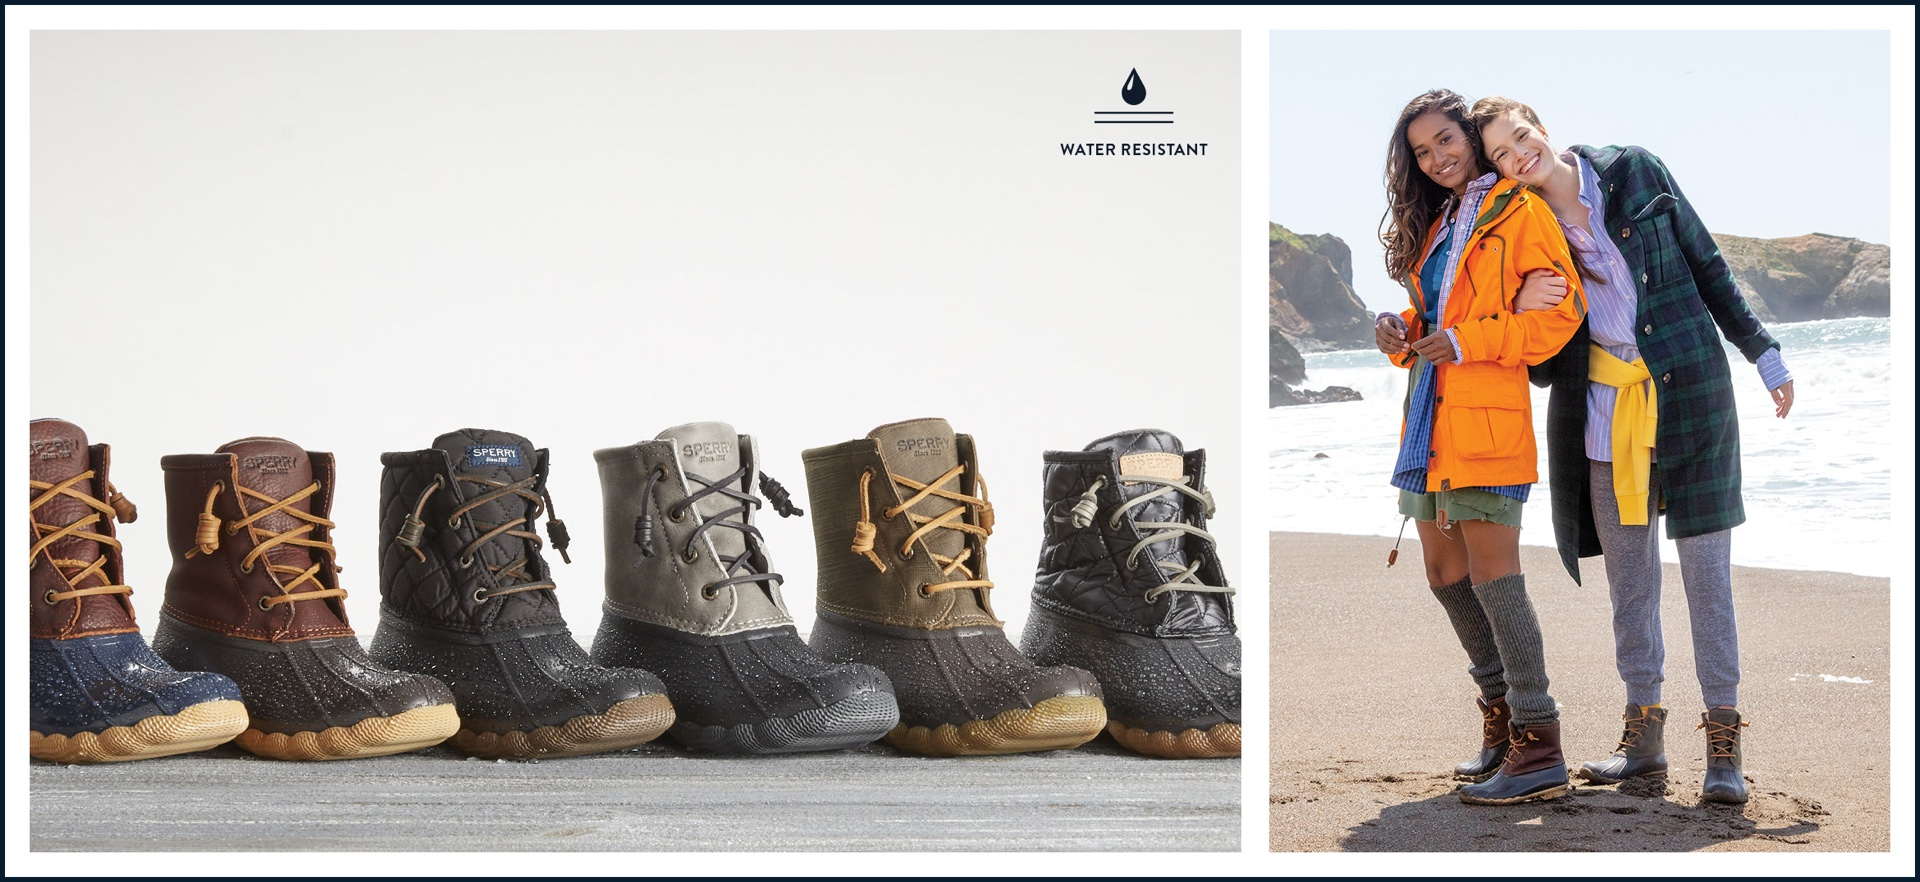 Boots by Sperry: Water Resistant